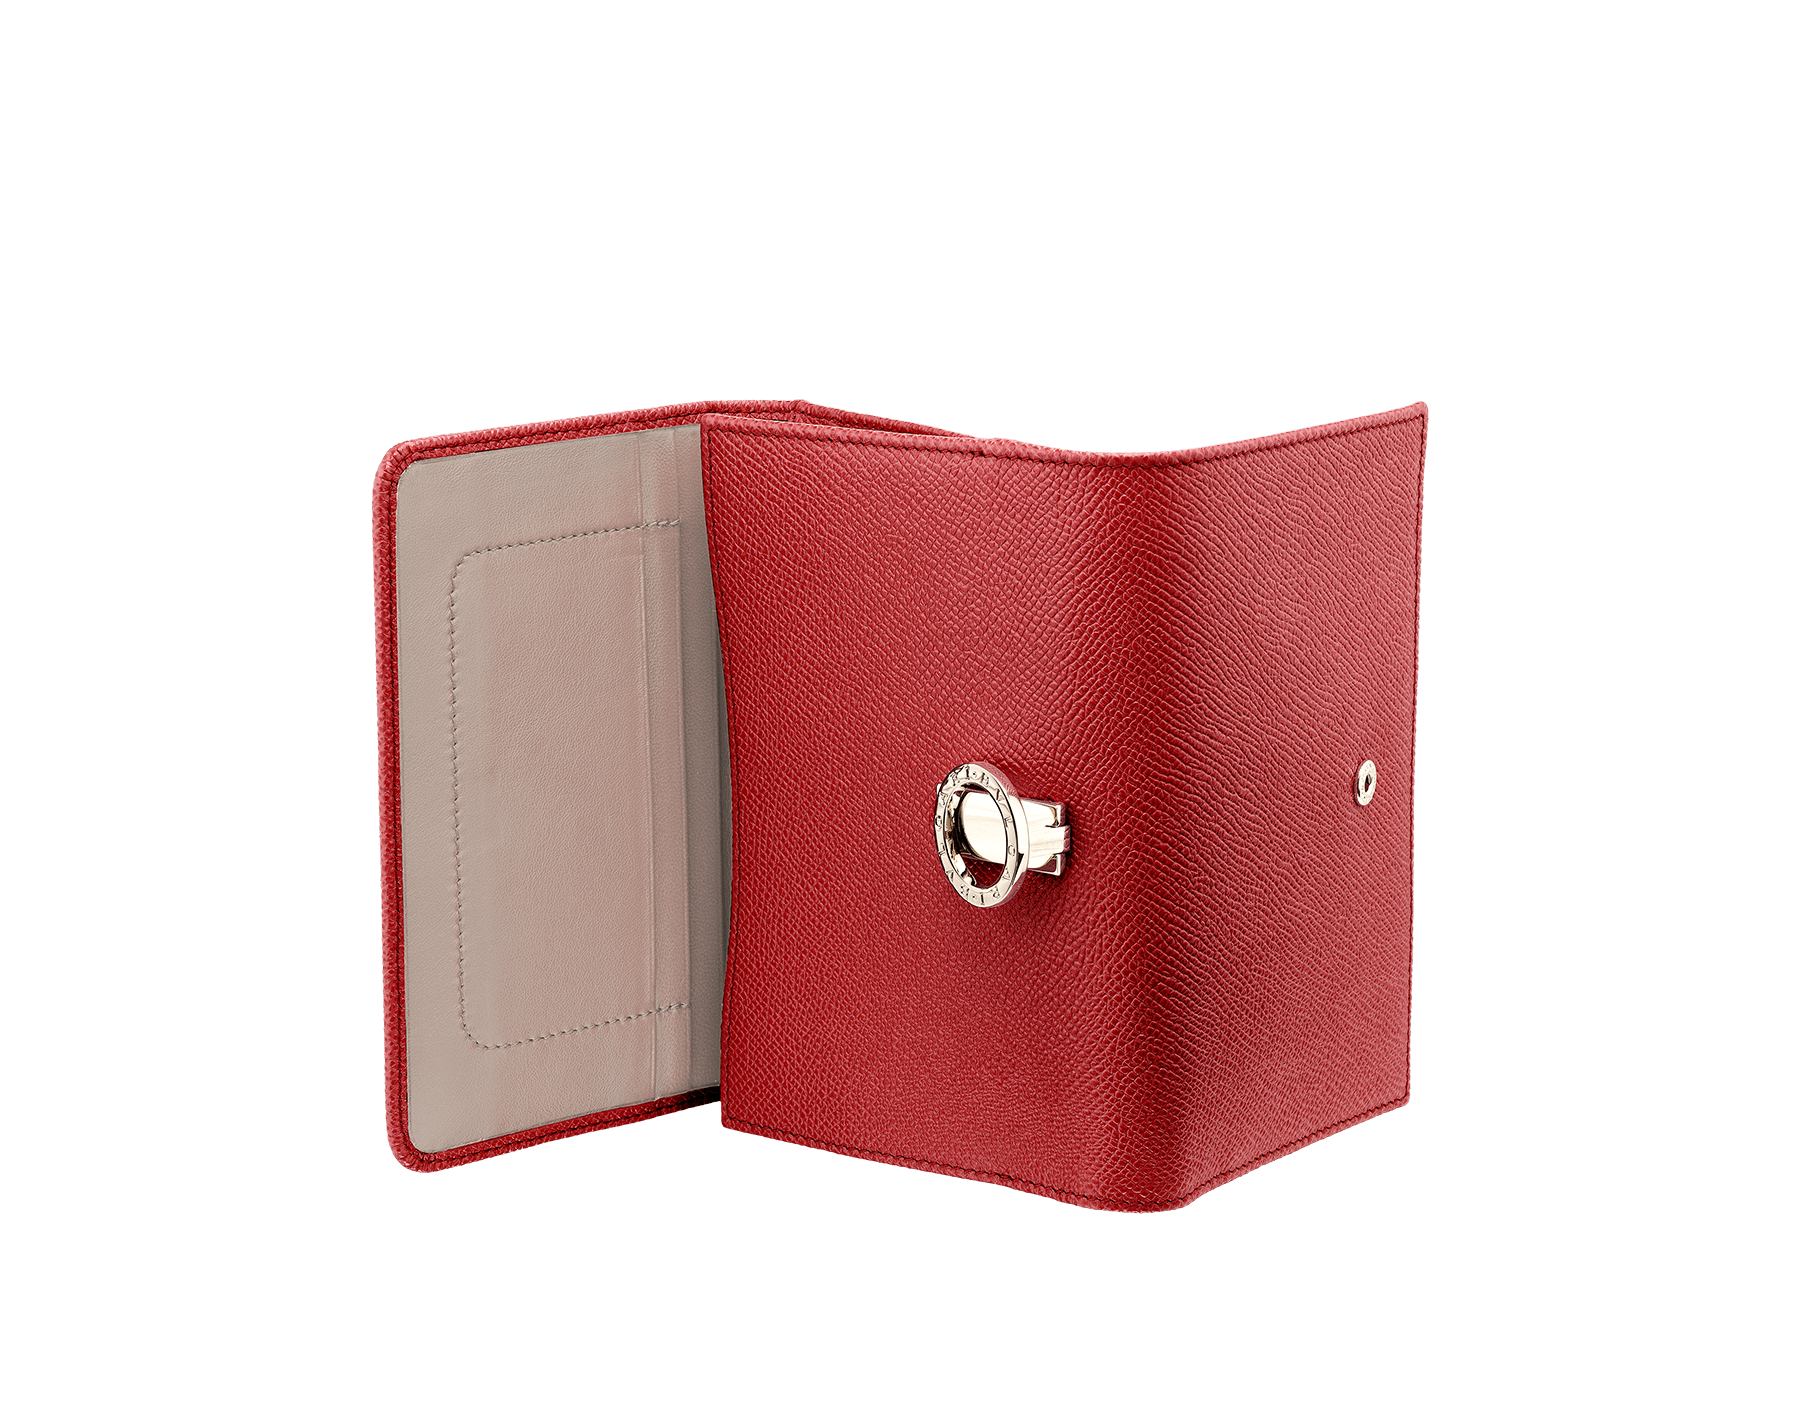 Compact pochette in ruby red bright grain calf leather, desert quartz nappa and fuxia nappa lining. Brass light gold plated hardware and iconic BVLGARI BVLGARI closure clip. 281454 image 3